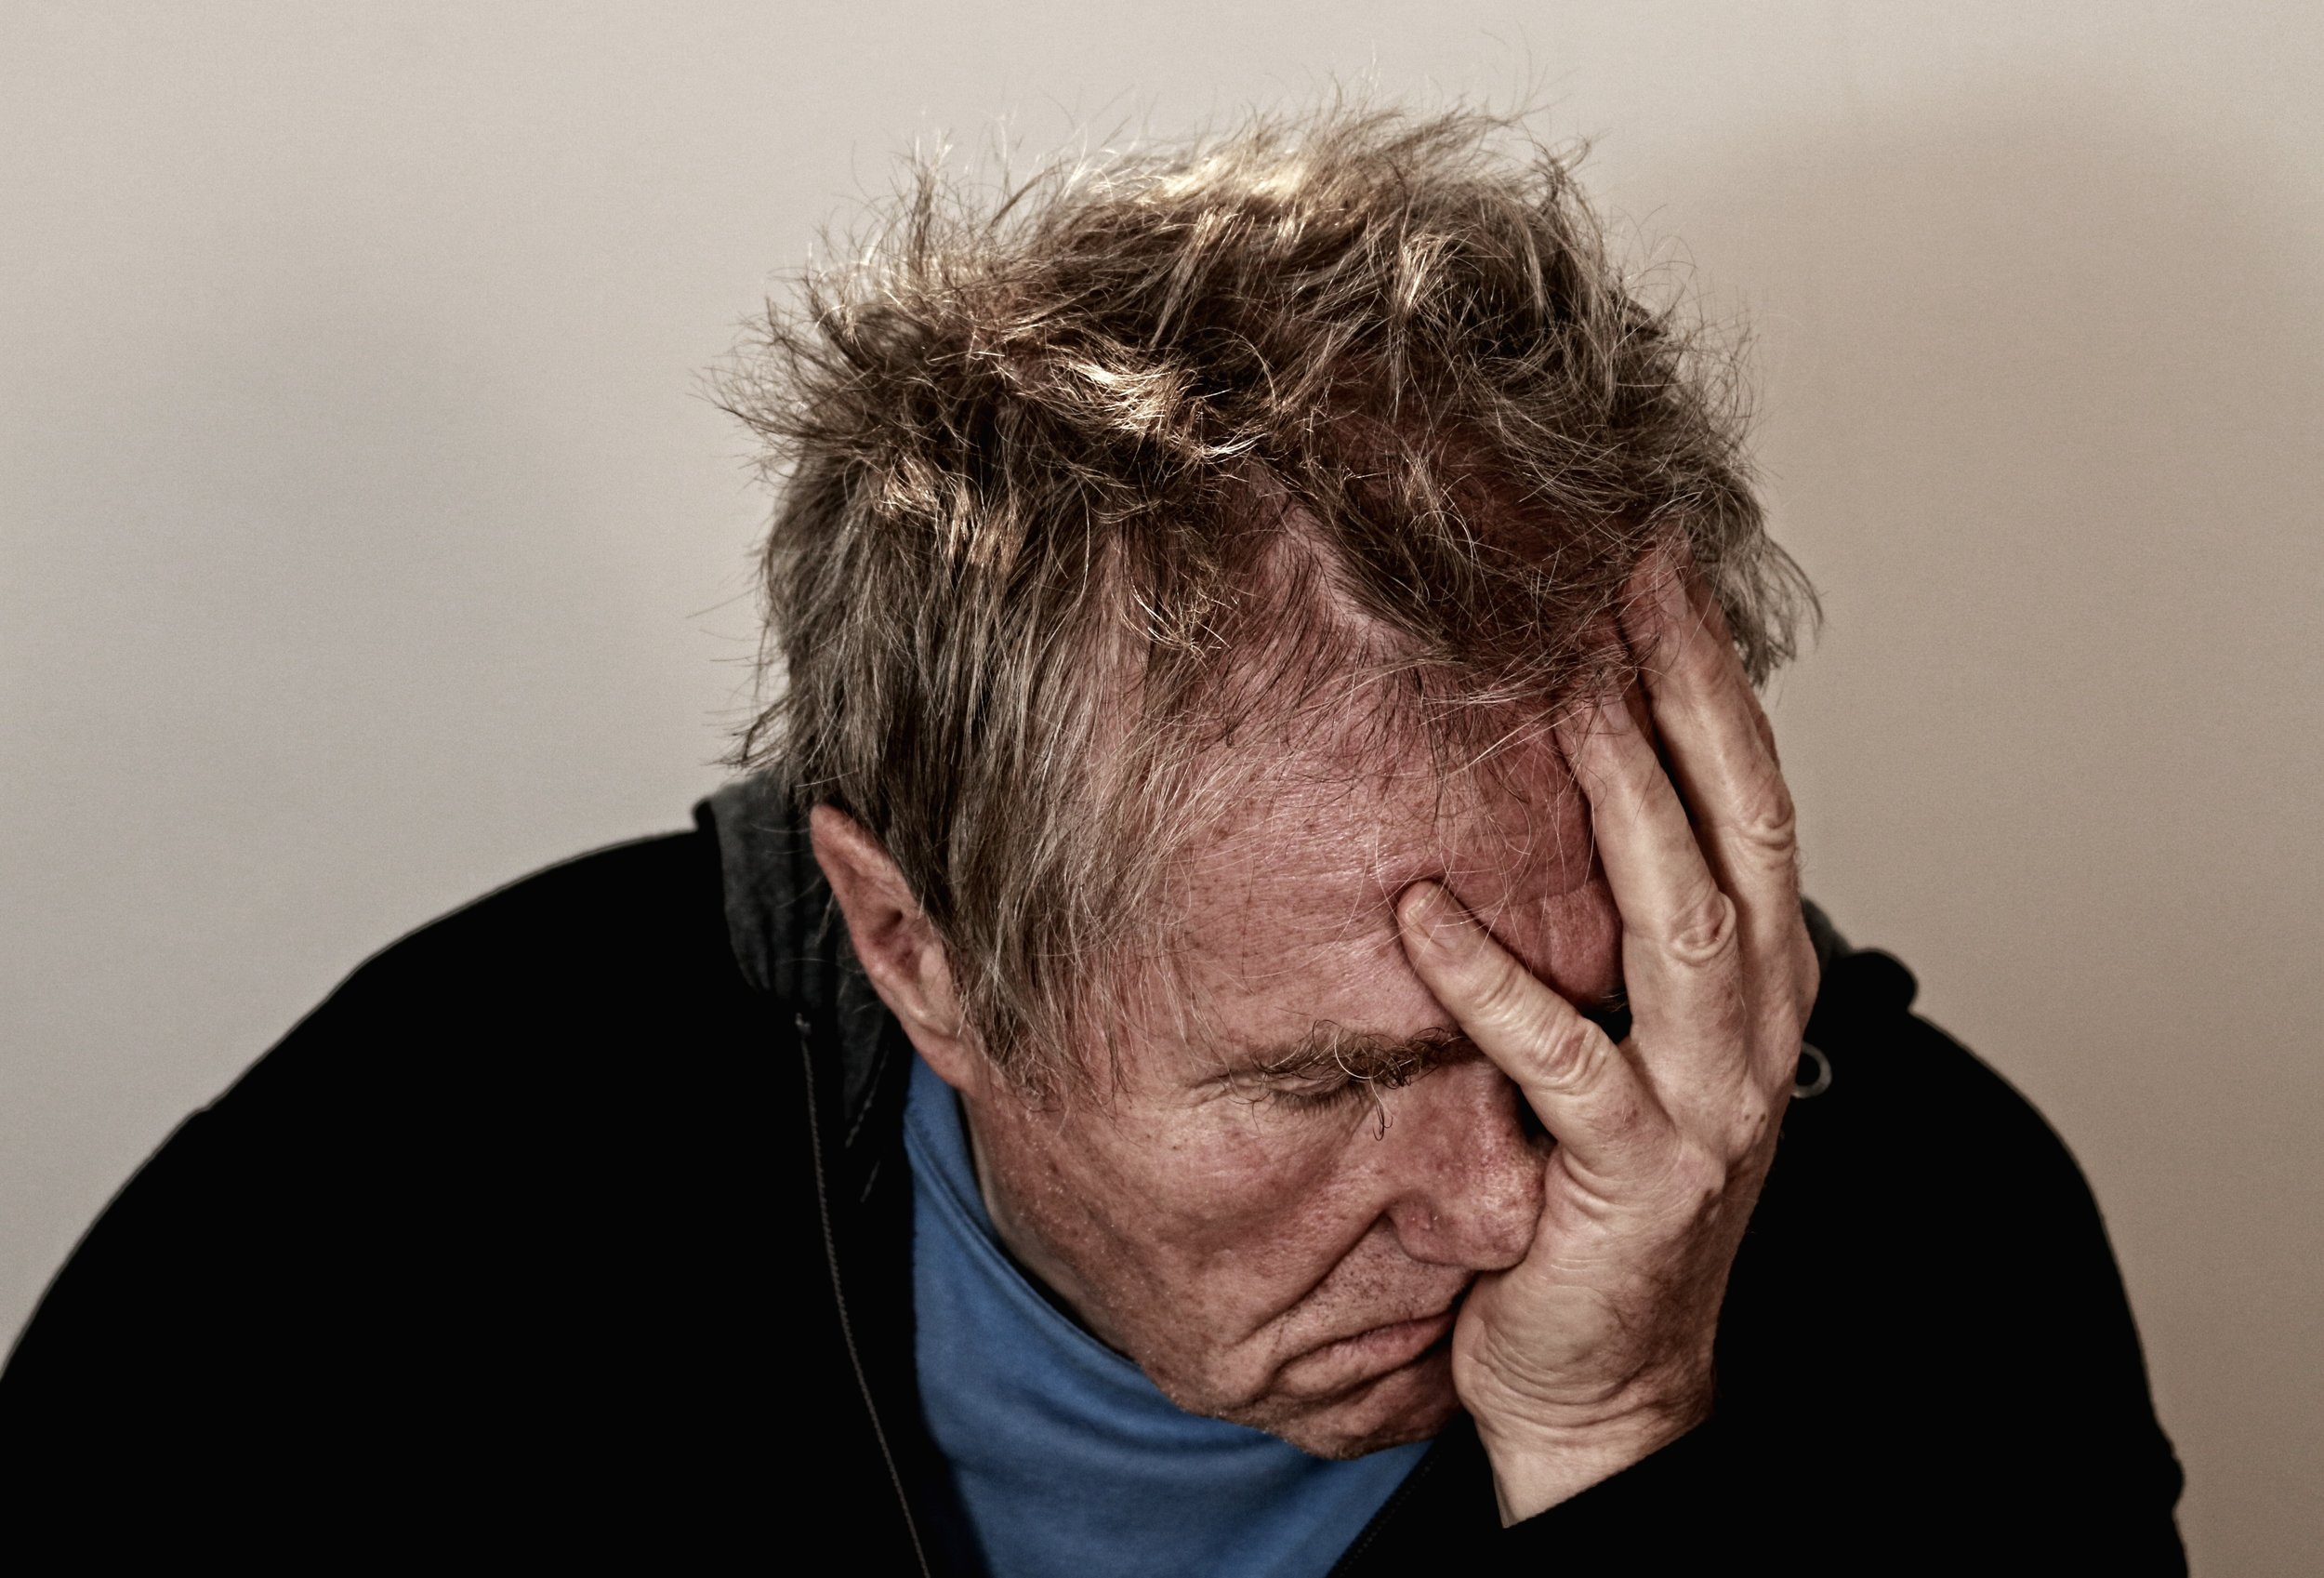 depressed-disappointed-elderly-23180.jpg